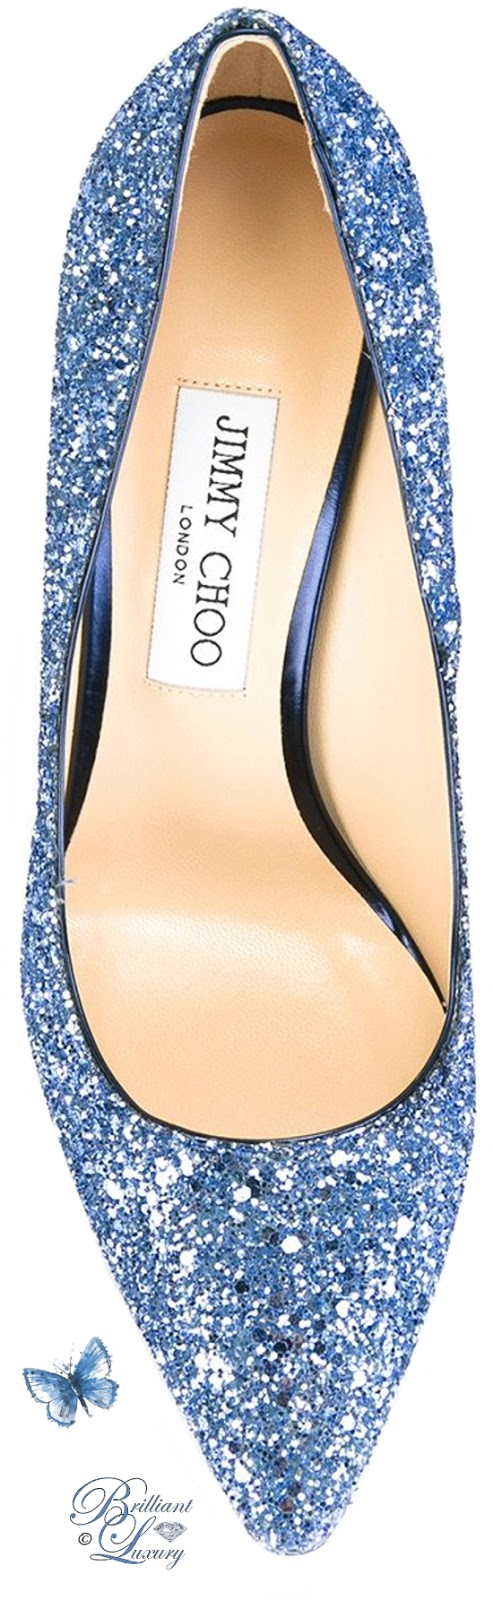 Brilliant Luxury ♦ Jimmy Choo blue glitter Romy Pumps